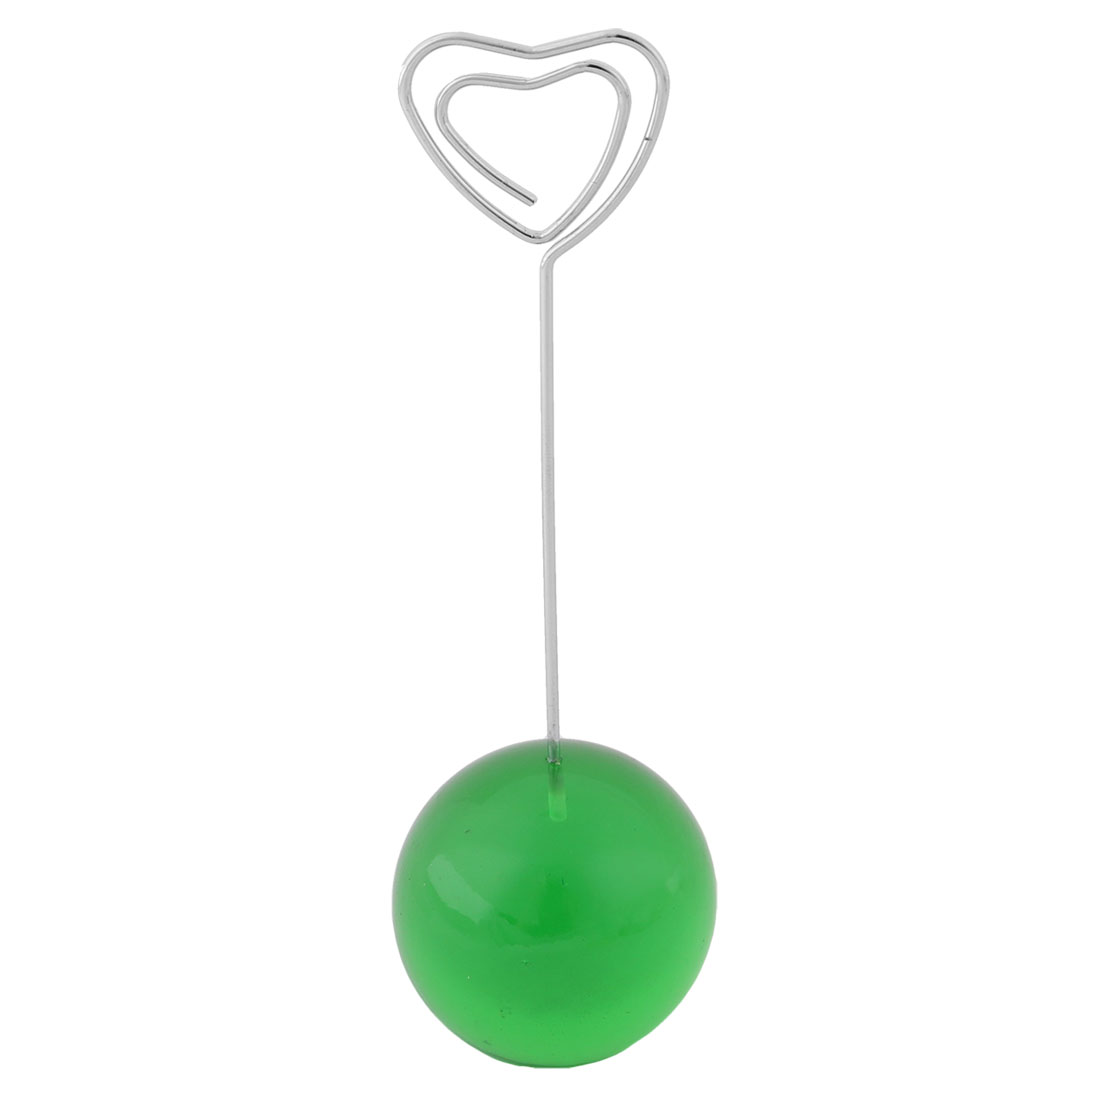 Office Desktop Ball Shaped Base Heart Design Clamp Note Photo Memo Clip Green